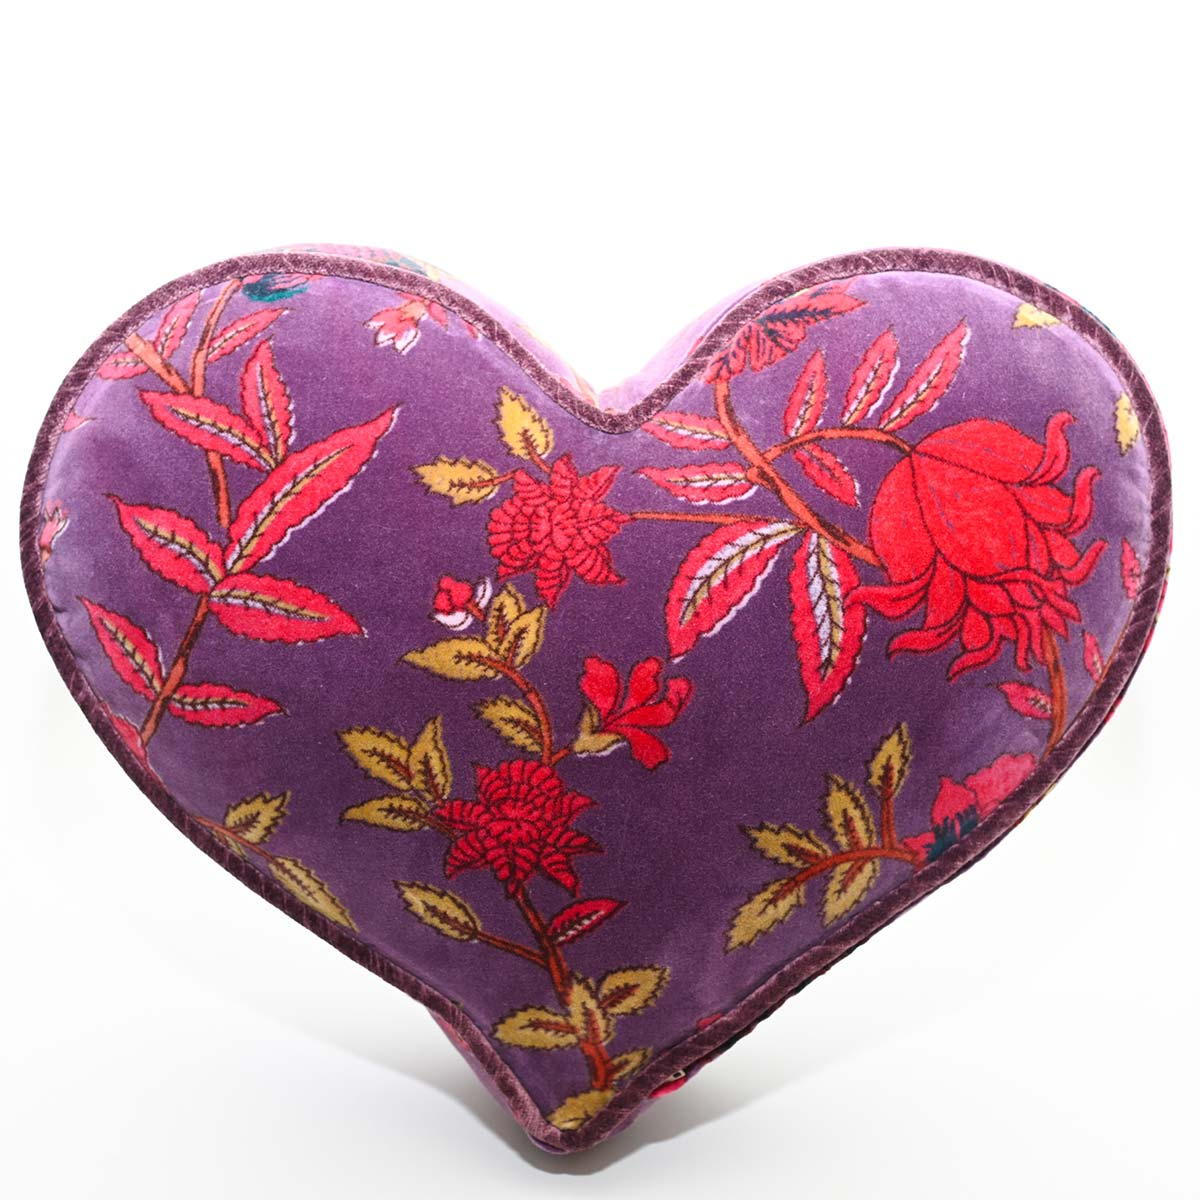 heart pillow large size floral on eggplant